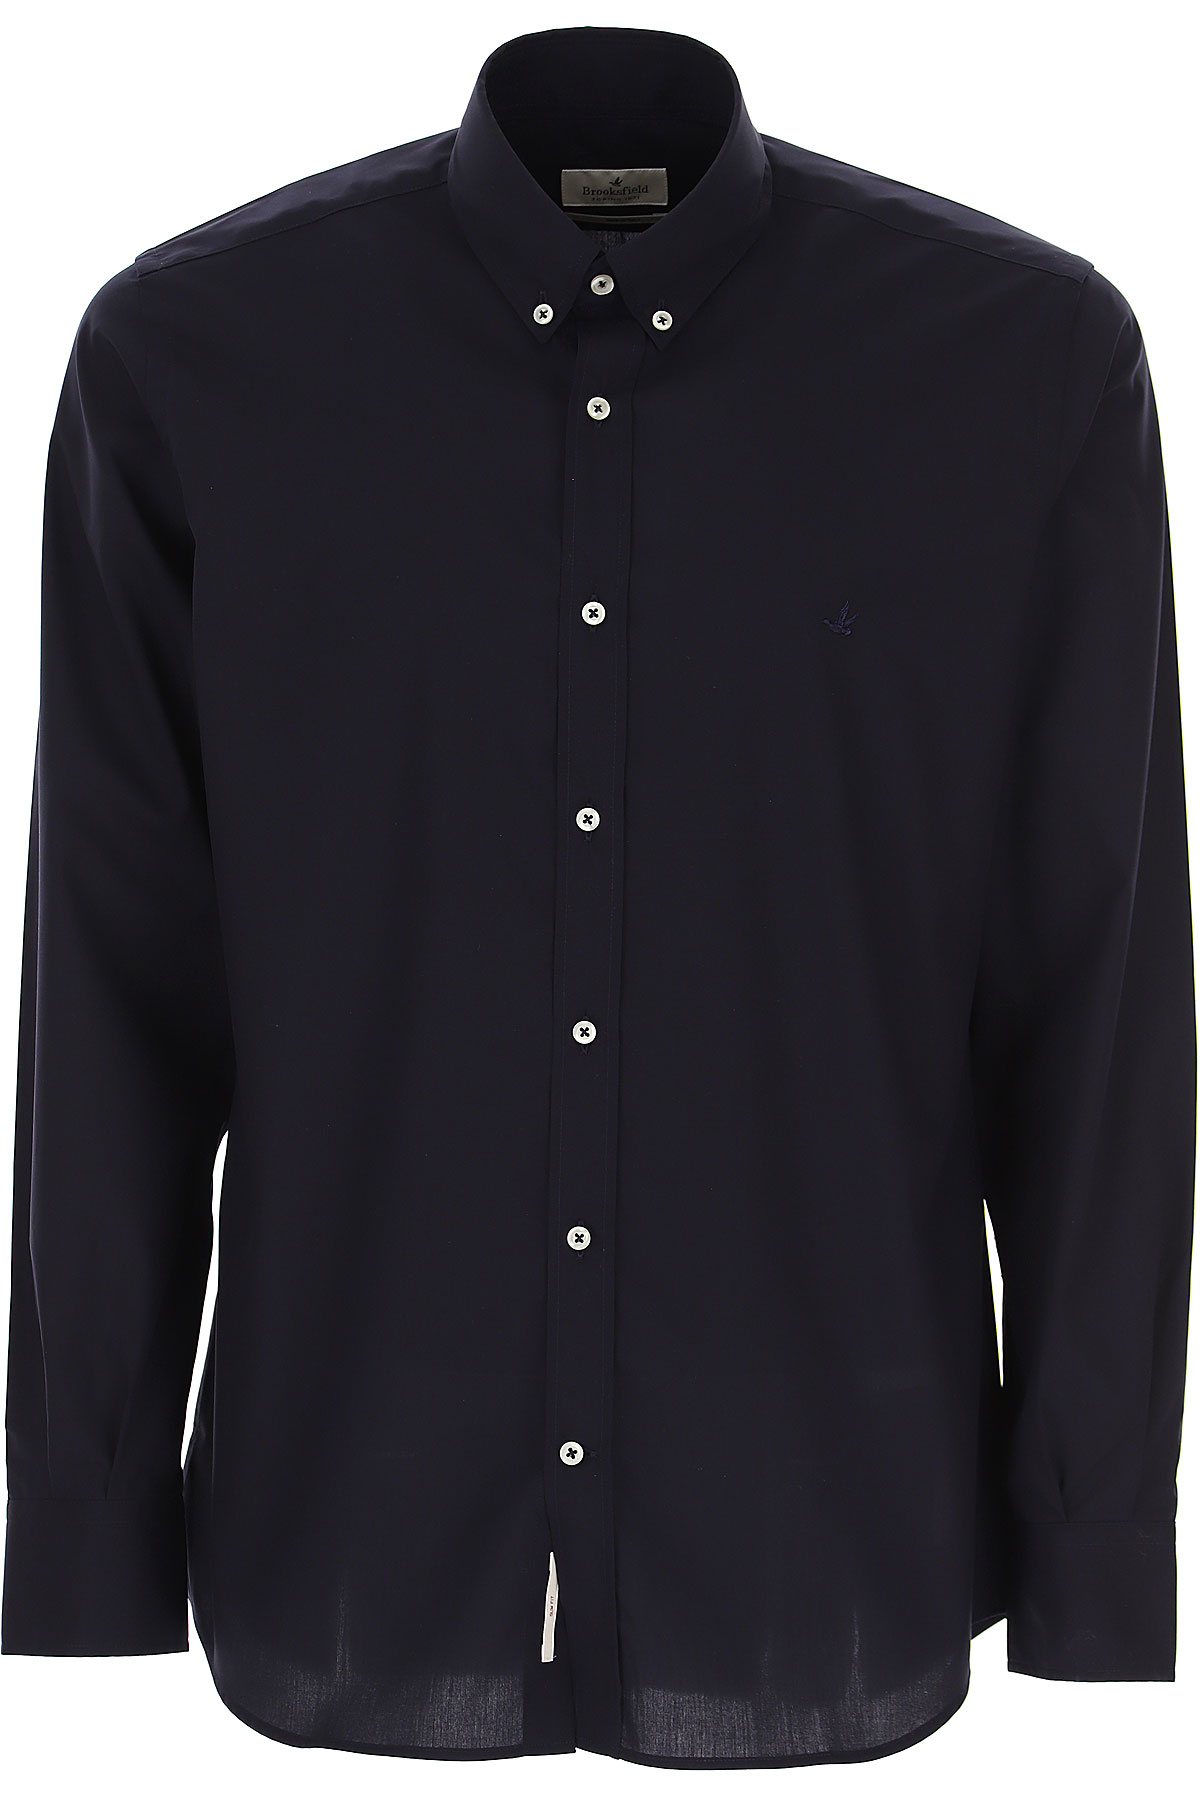 Brooksfield Shirt for Men On Sale, Black, Cotton, 2019, 15.5 15.75 16 16.5 17 17.5